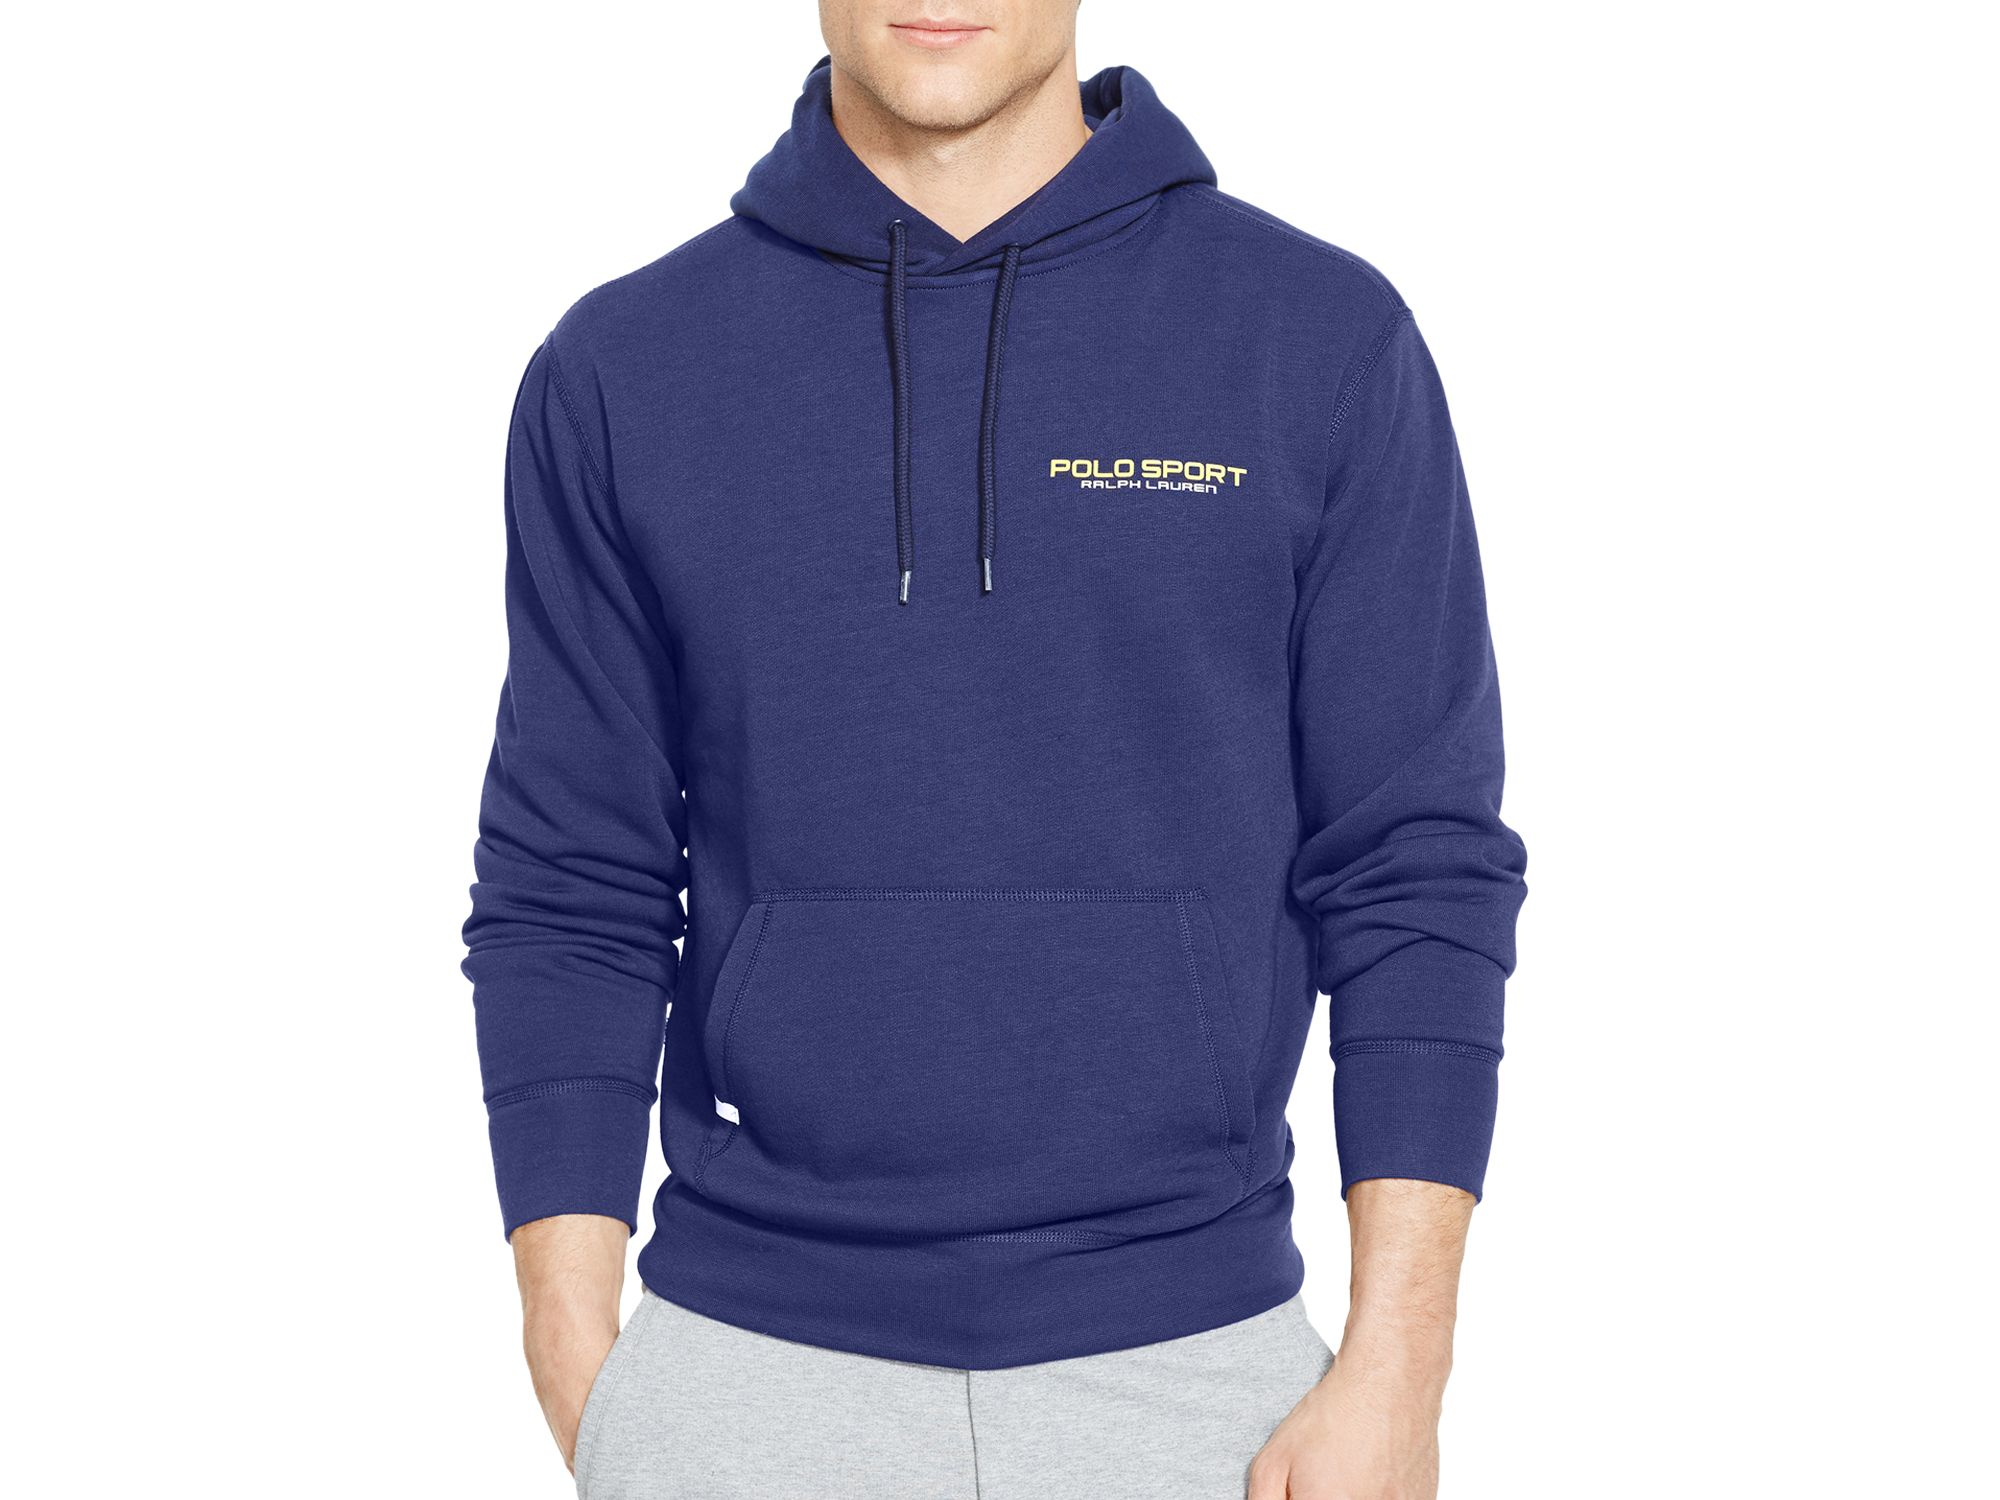 lyst ralph lauren polo sport fleece pullover hoodie in. Black Bedroom Furniture Sets. Home Design Ideas